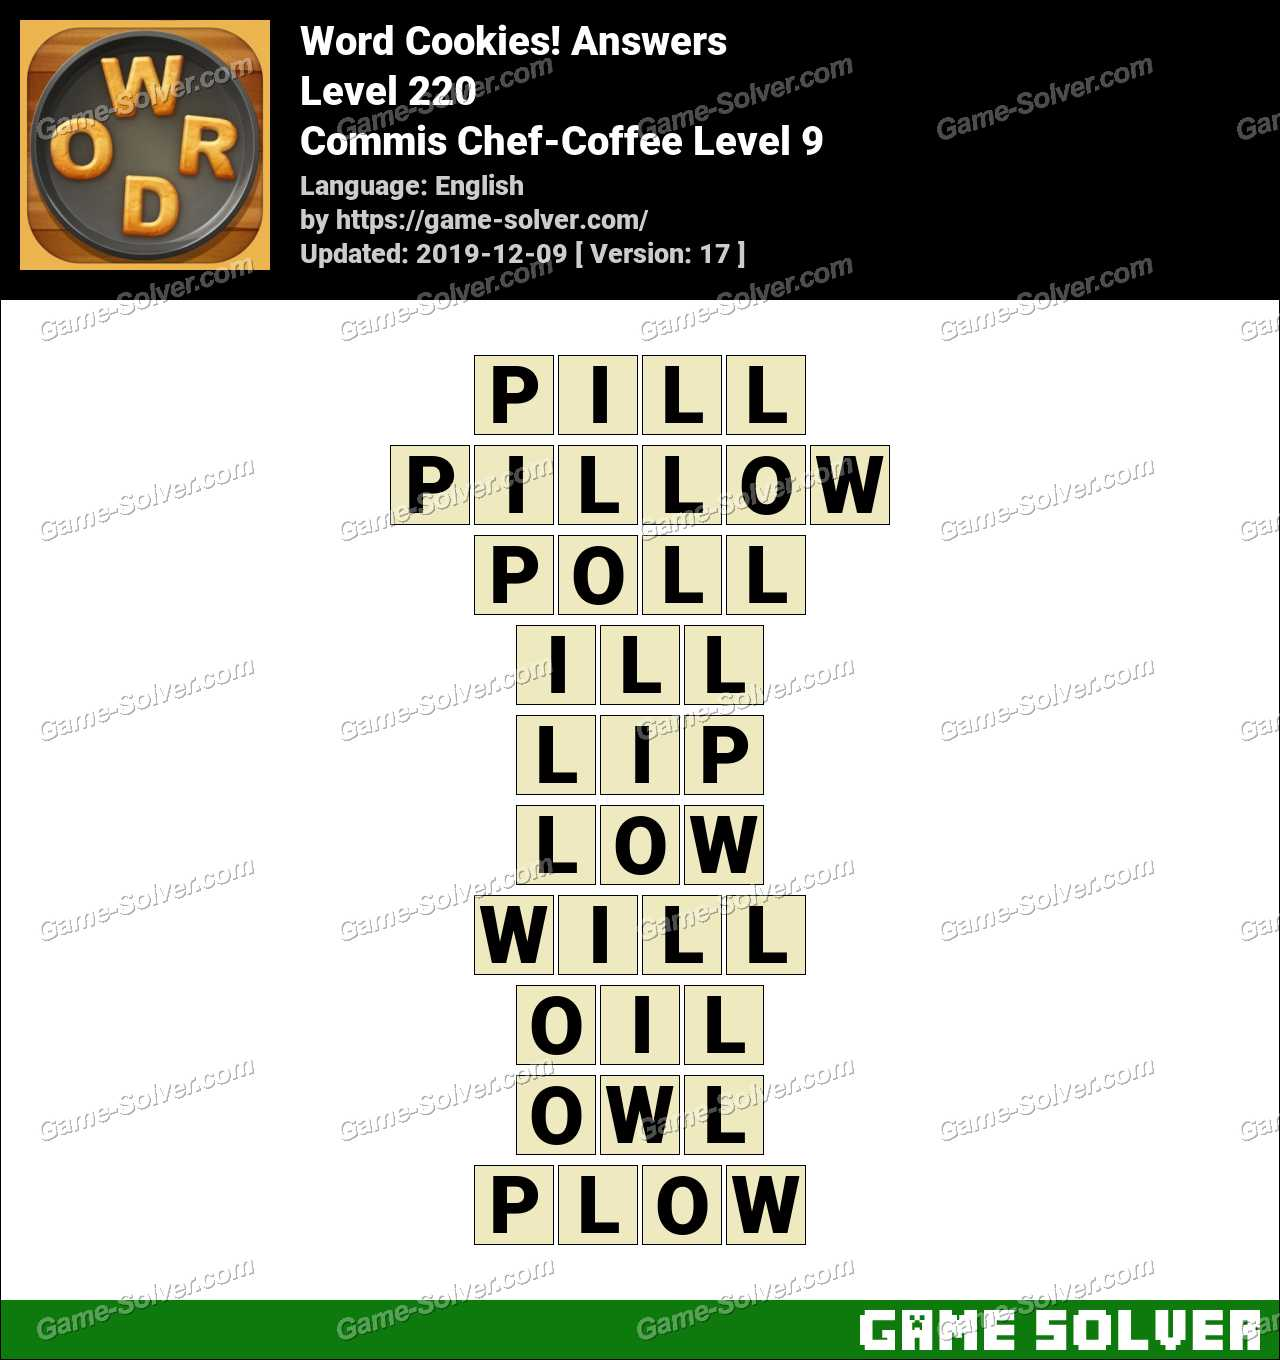 Word Cookies Commis Chef-Coffee Level 9 Answers